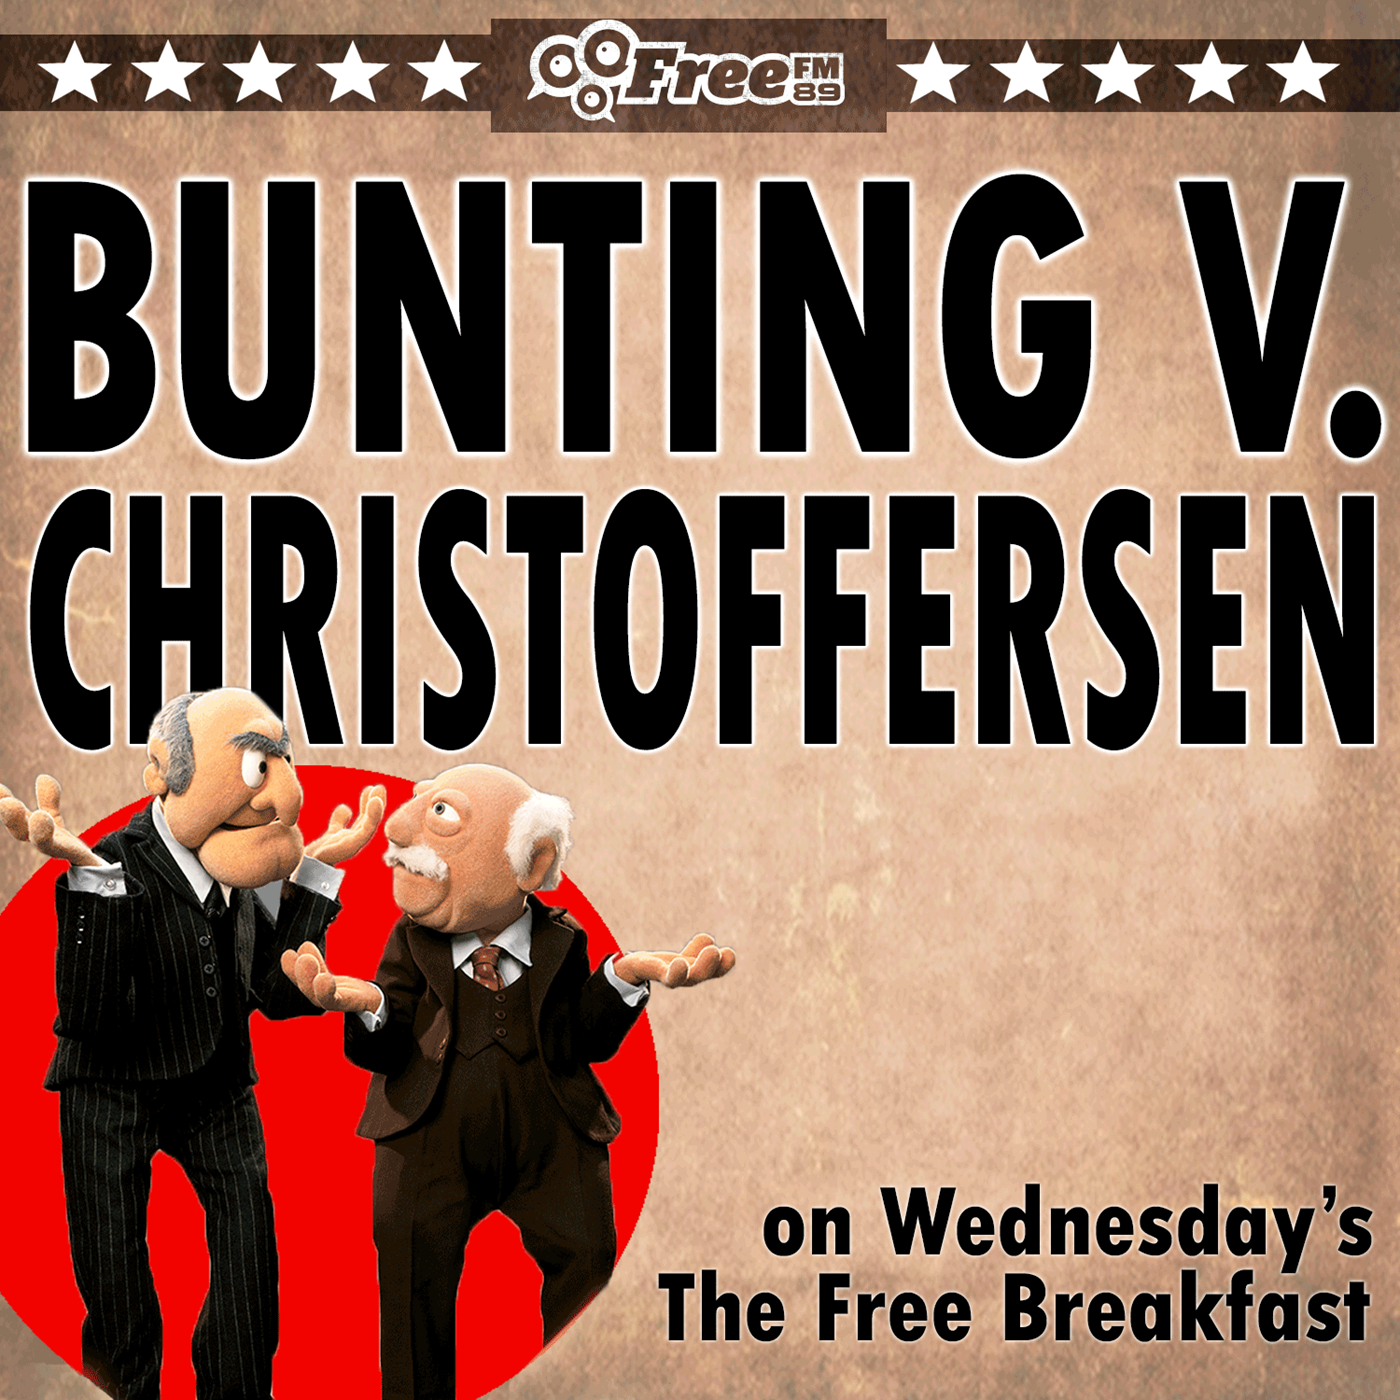 Bunting v Christoffersen